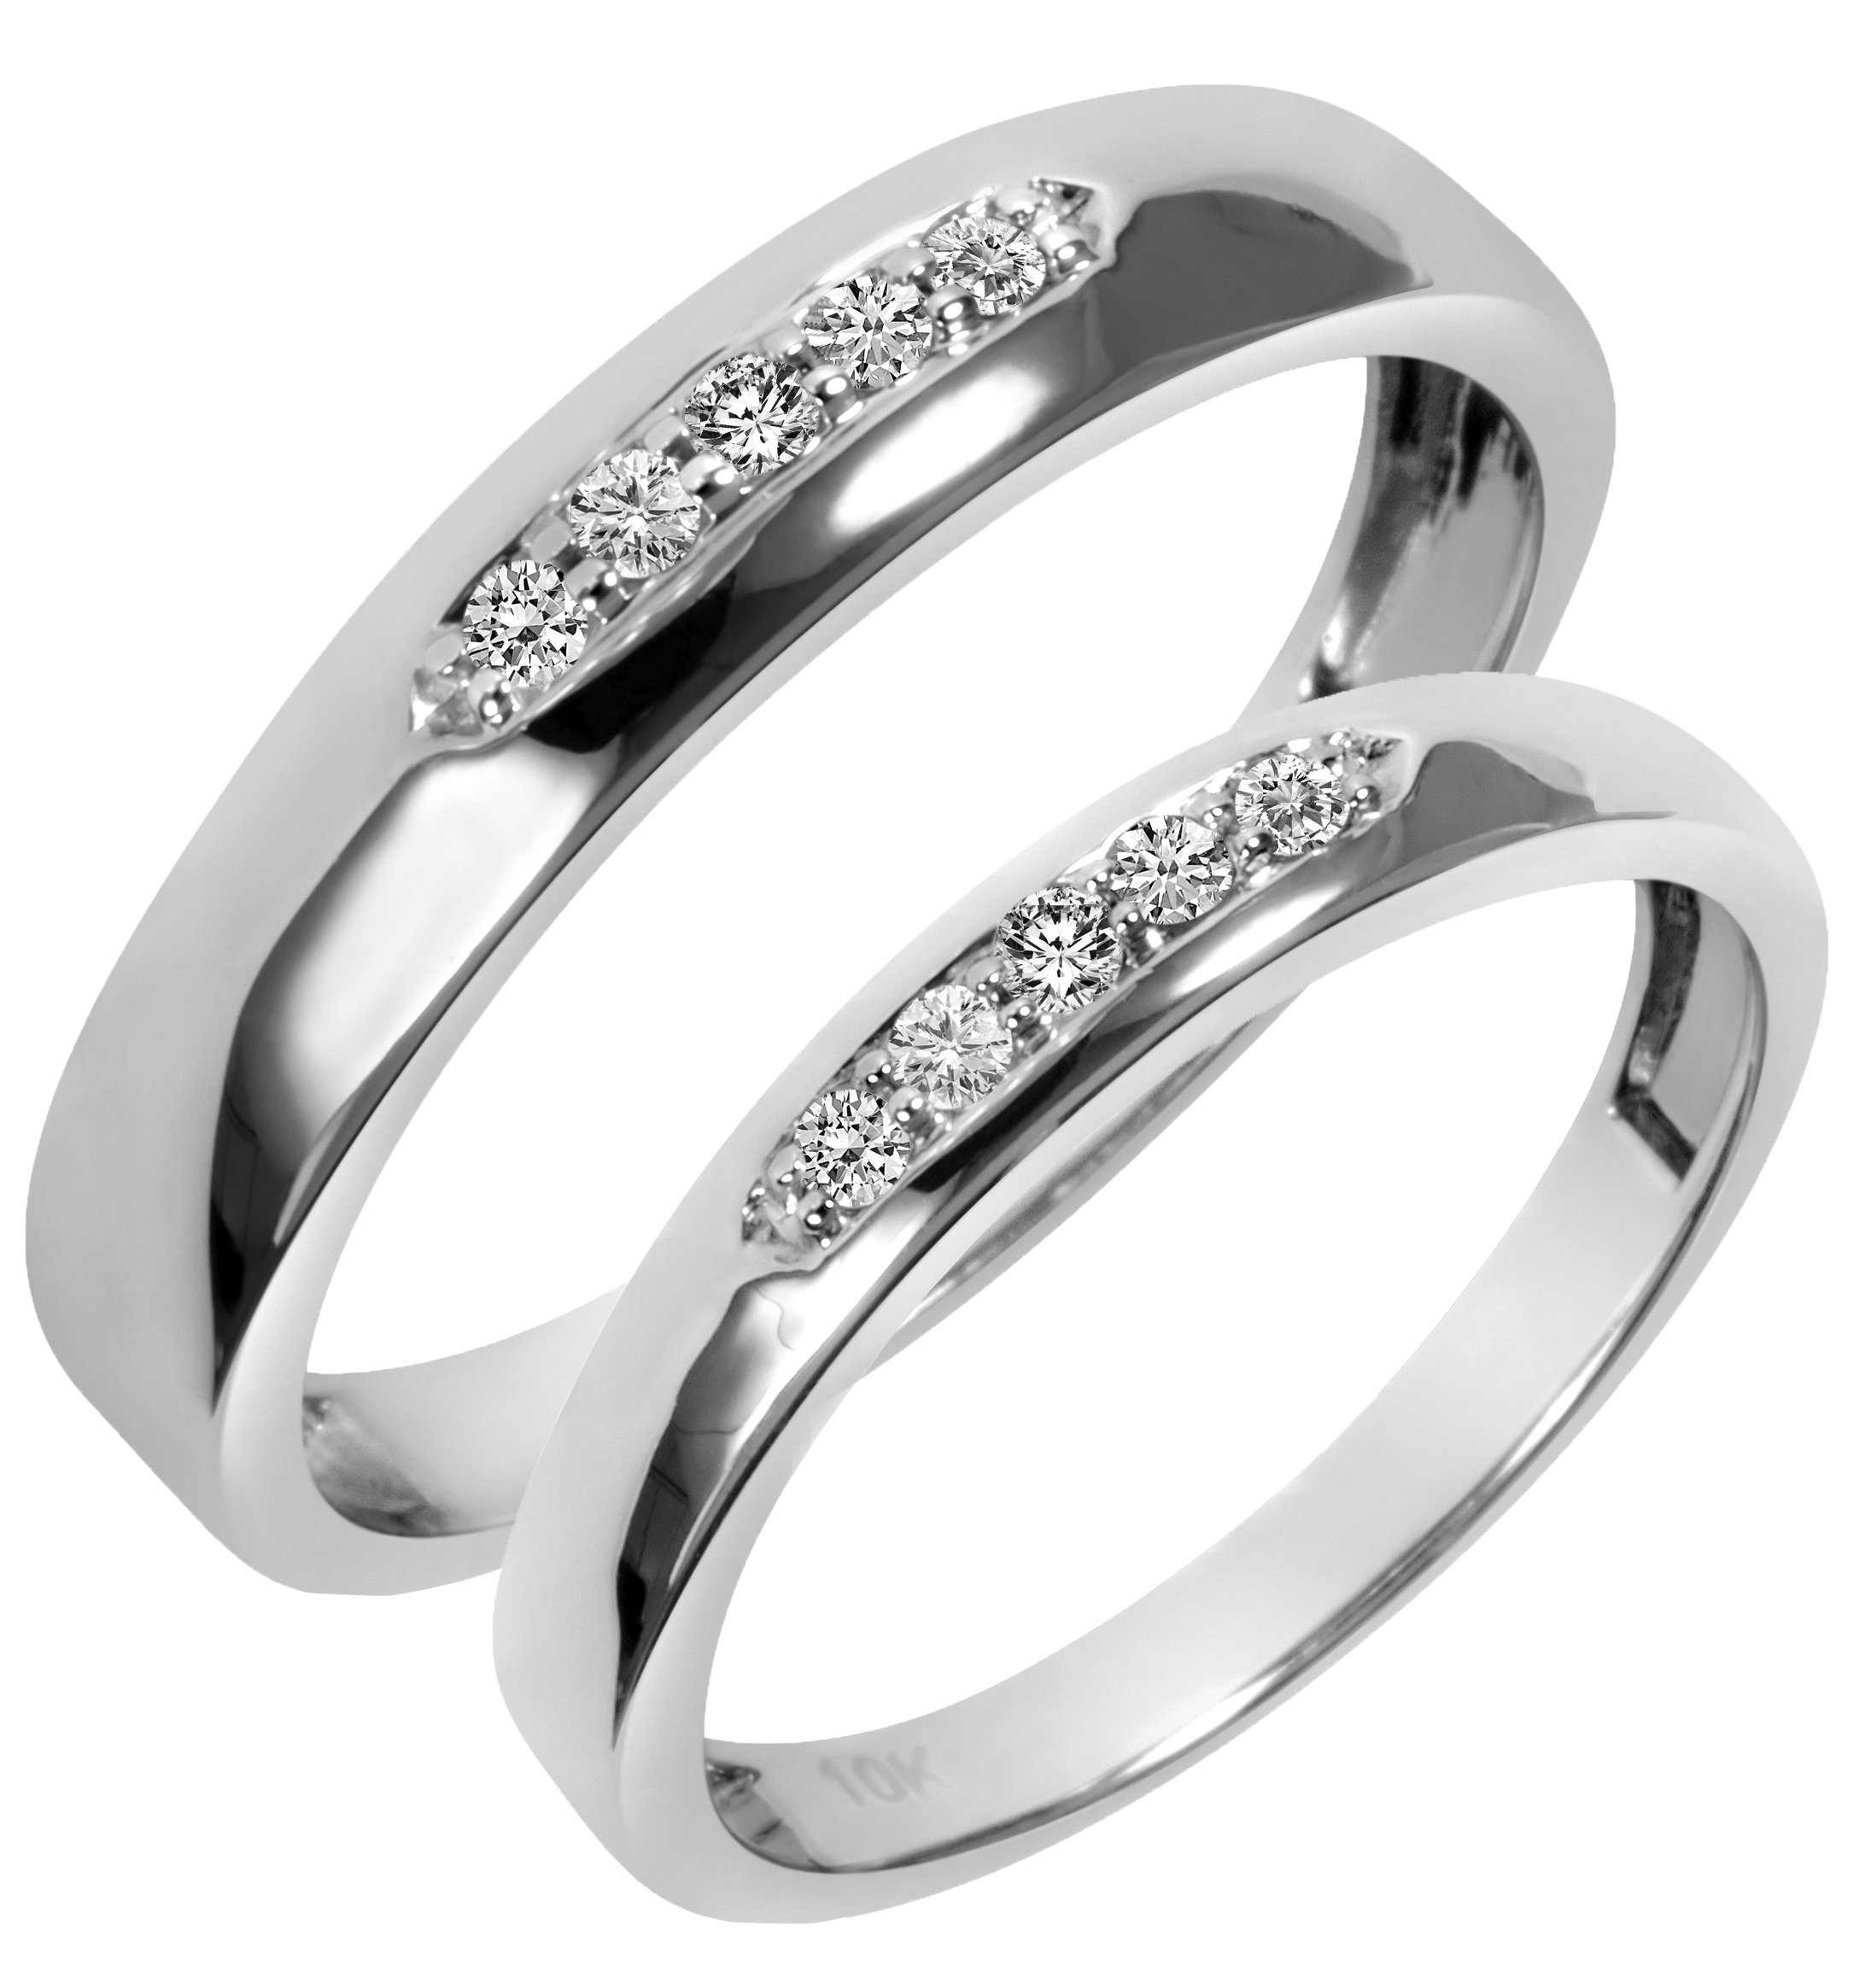 gold rings wedding ip wholesale bands stainless steel jc matching